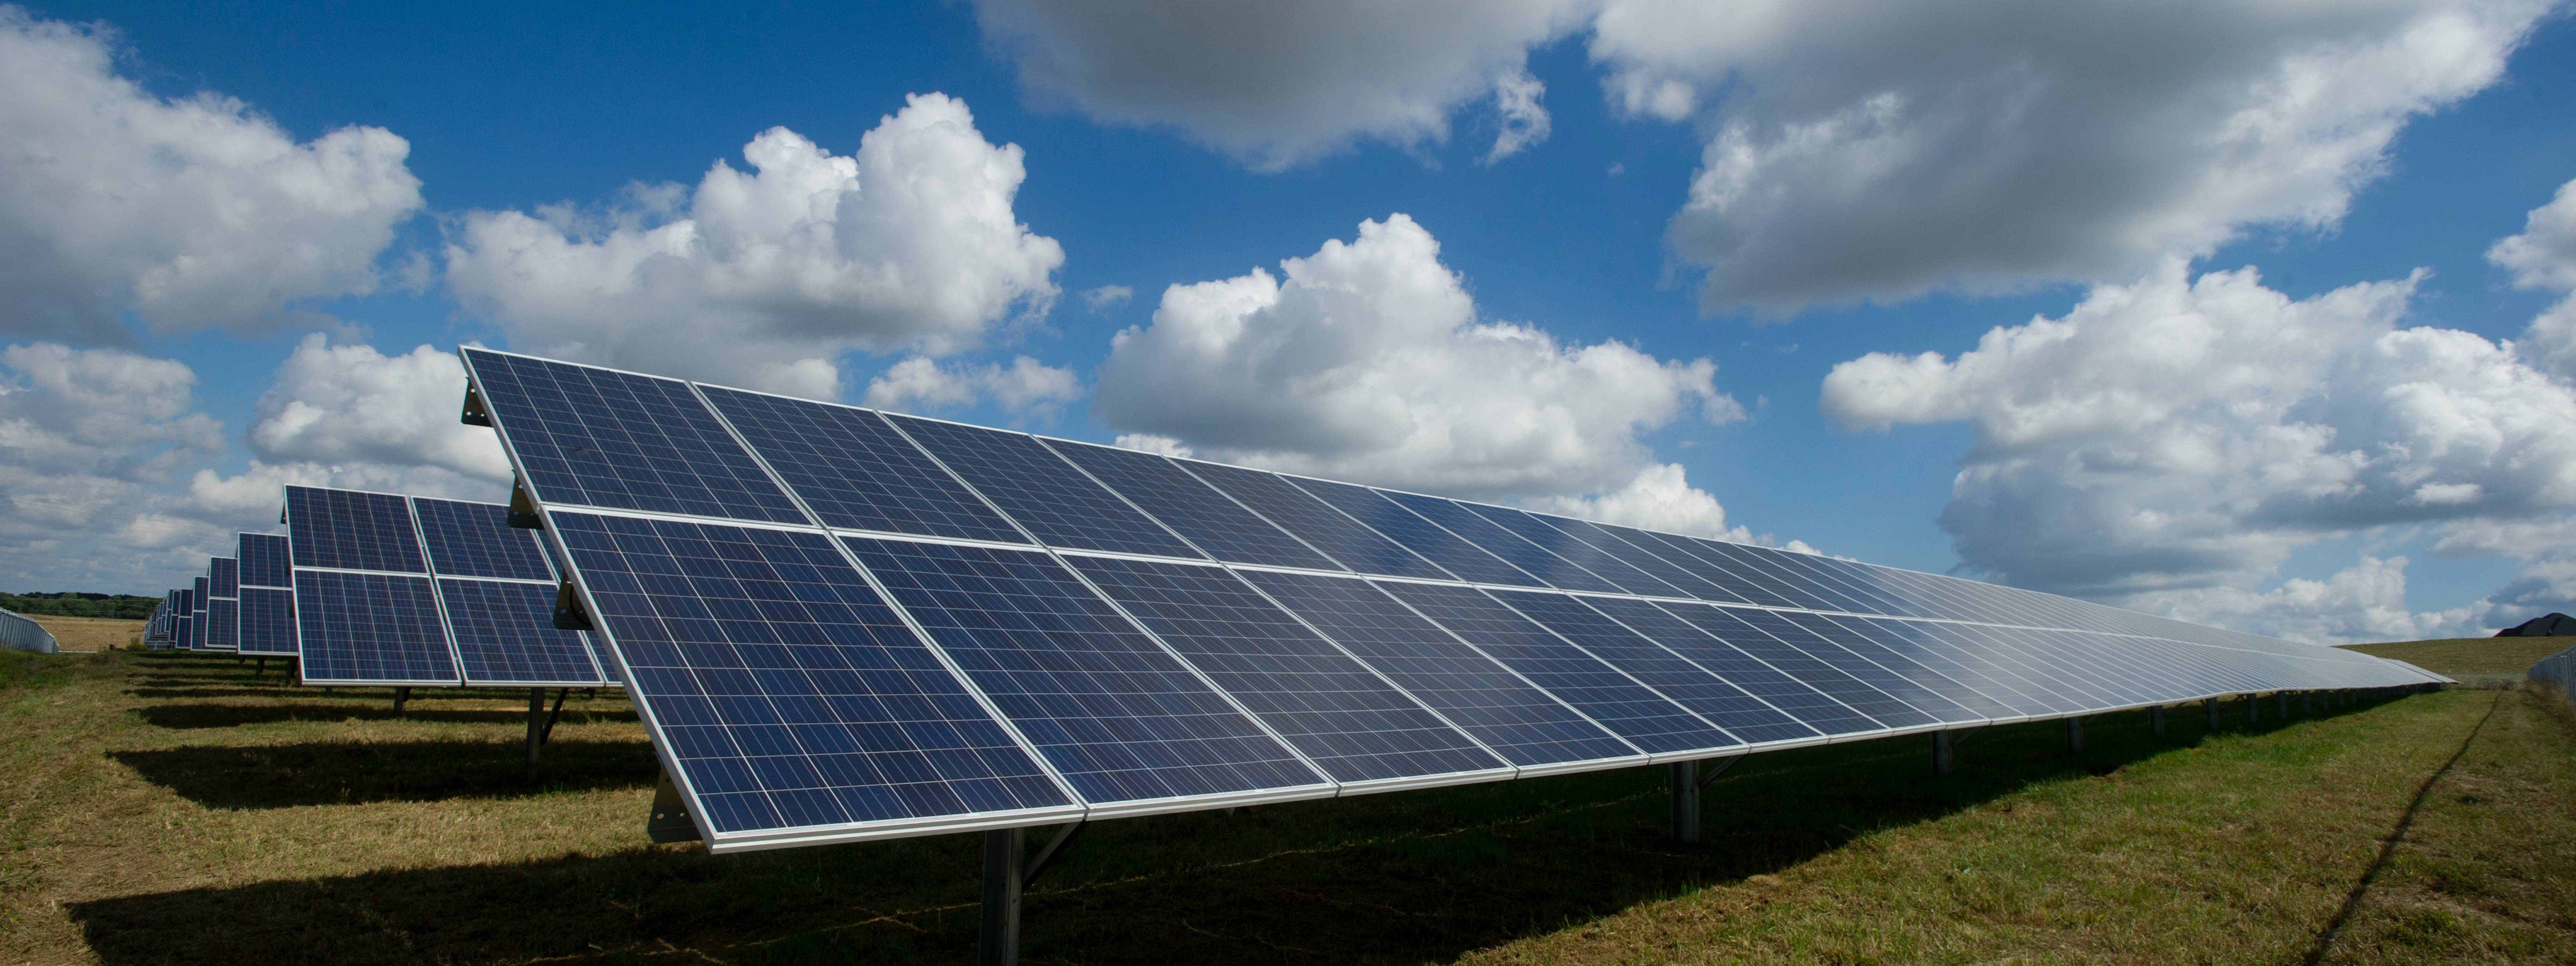 Where is the utility scale solar in PA?